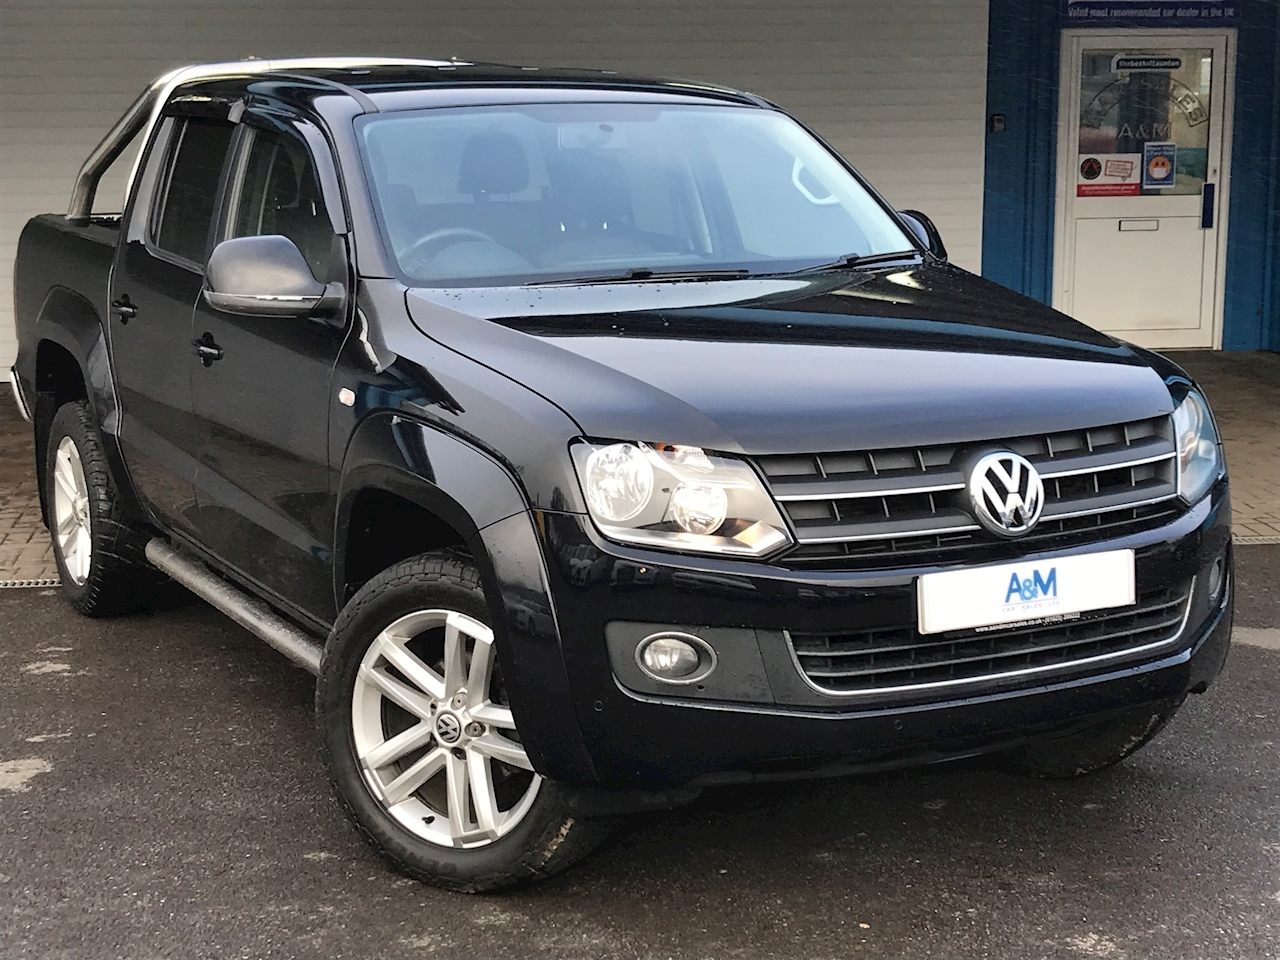 Volkswagen 2.0 BiTDI BlueMotion Tech Highline Per Pickup 4dr Diesel Automatic 4MOTION (178 bhp)